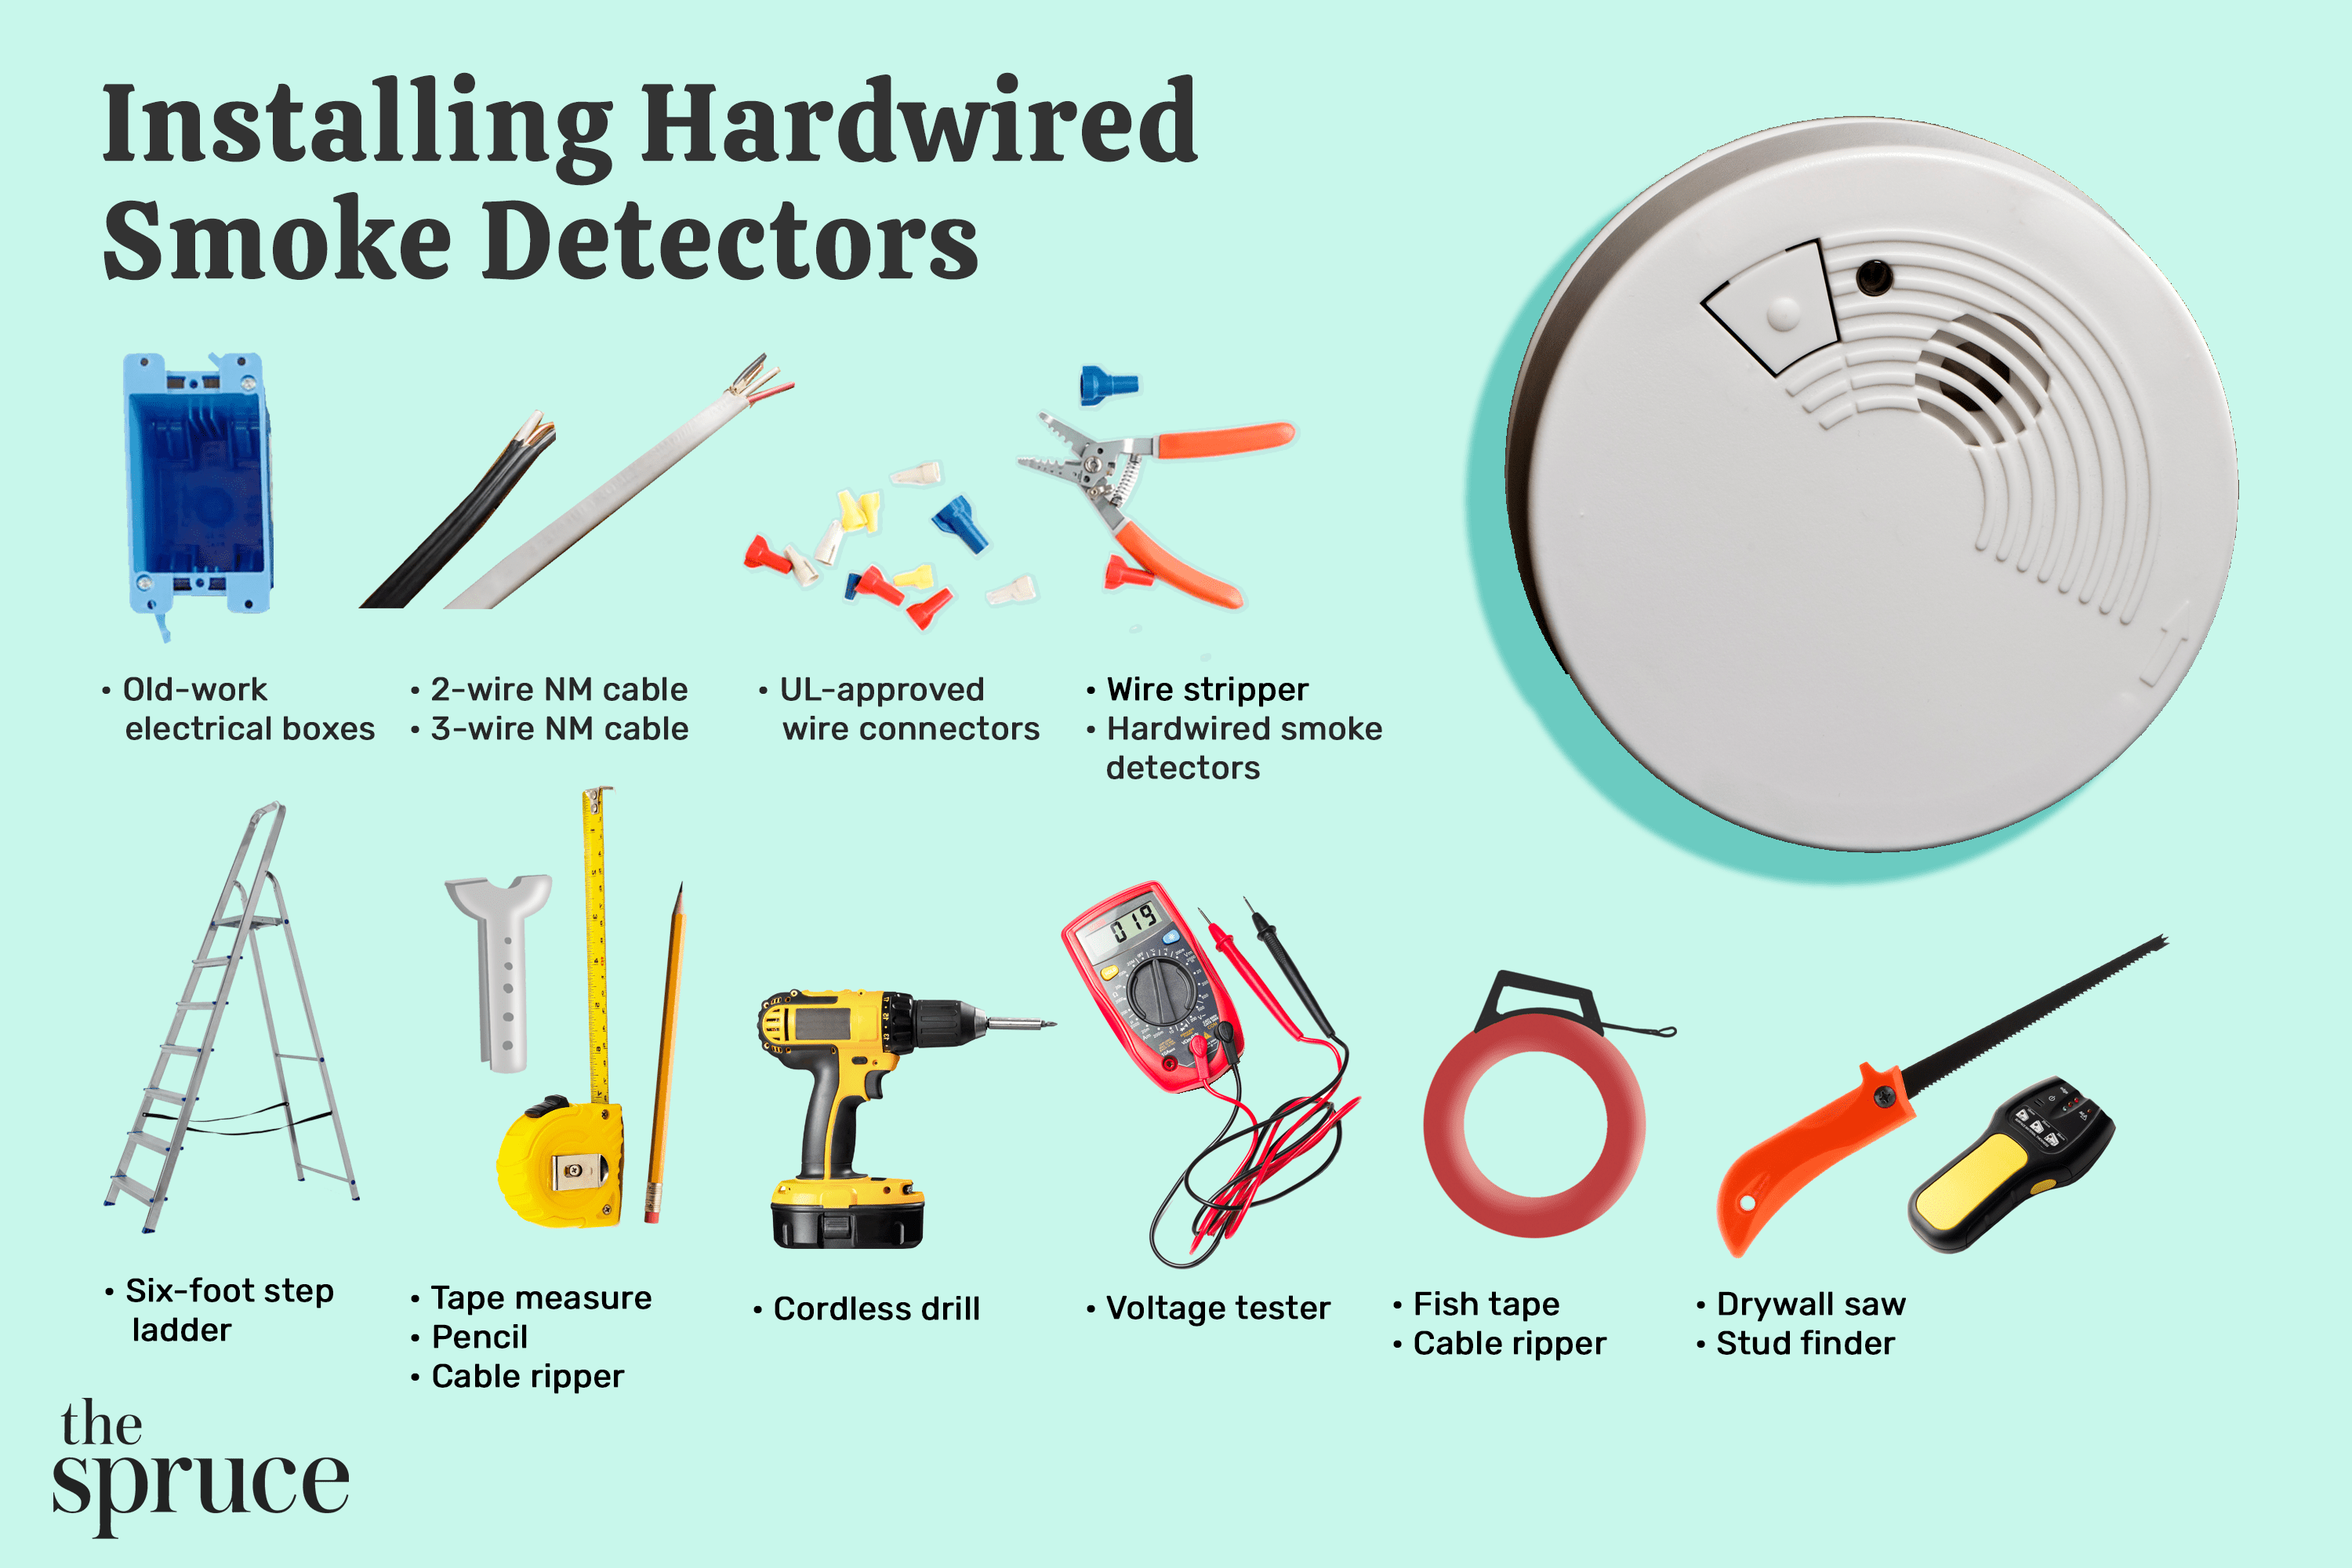 Photo composite with materials and tools to install hardwired smoke detectors